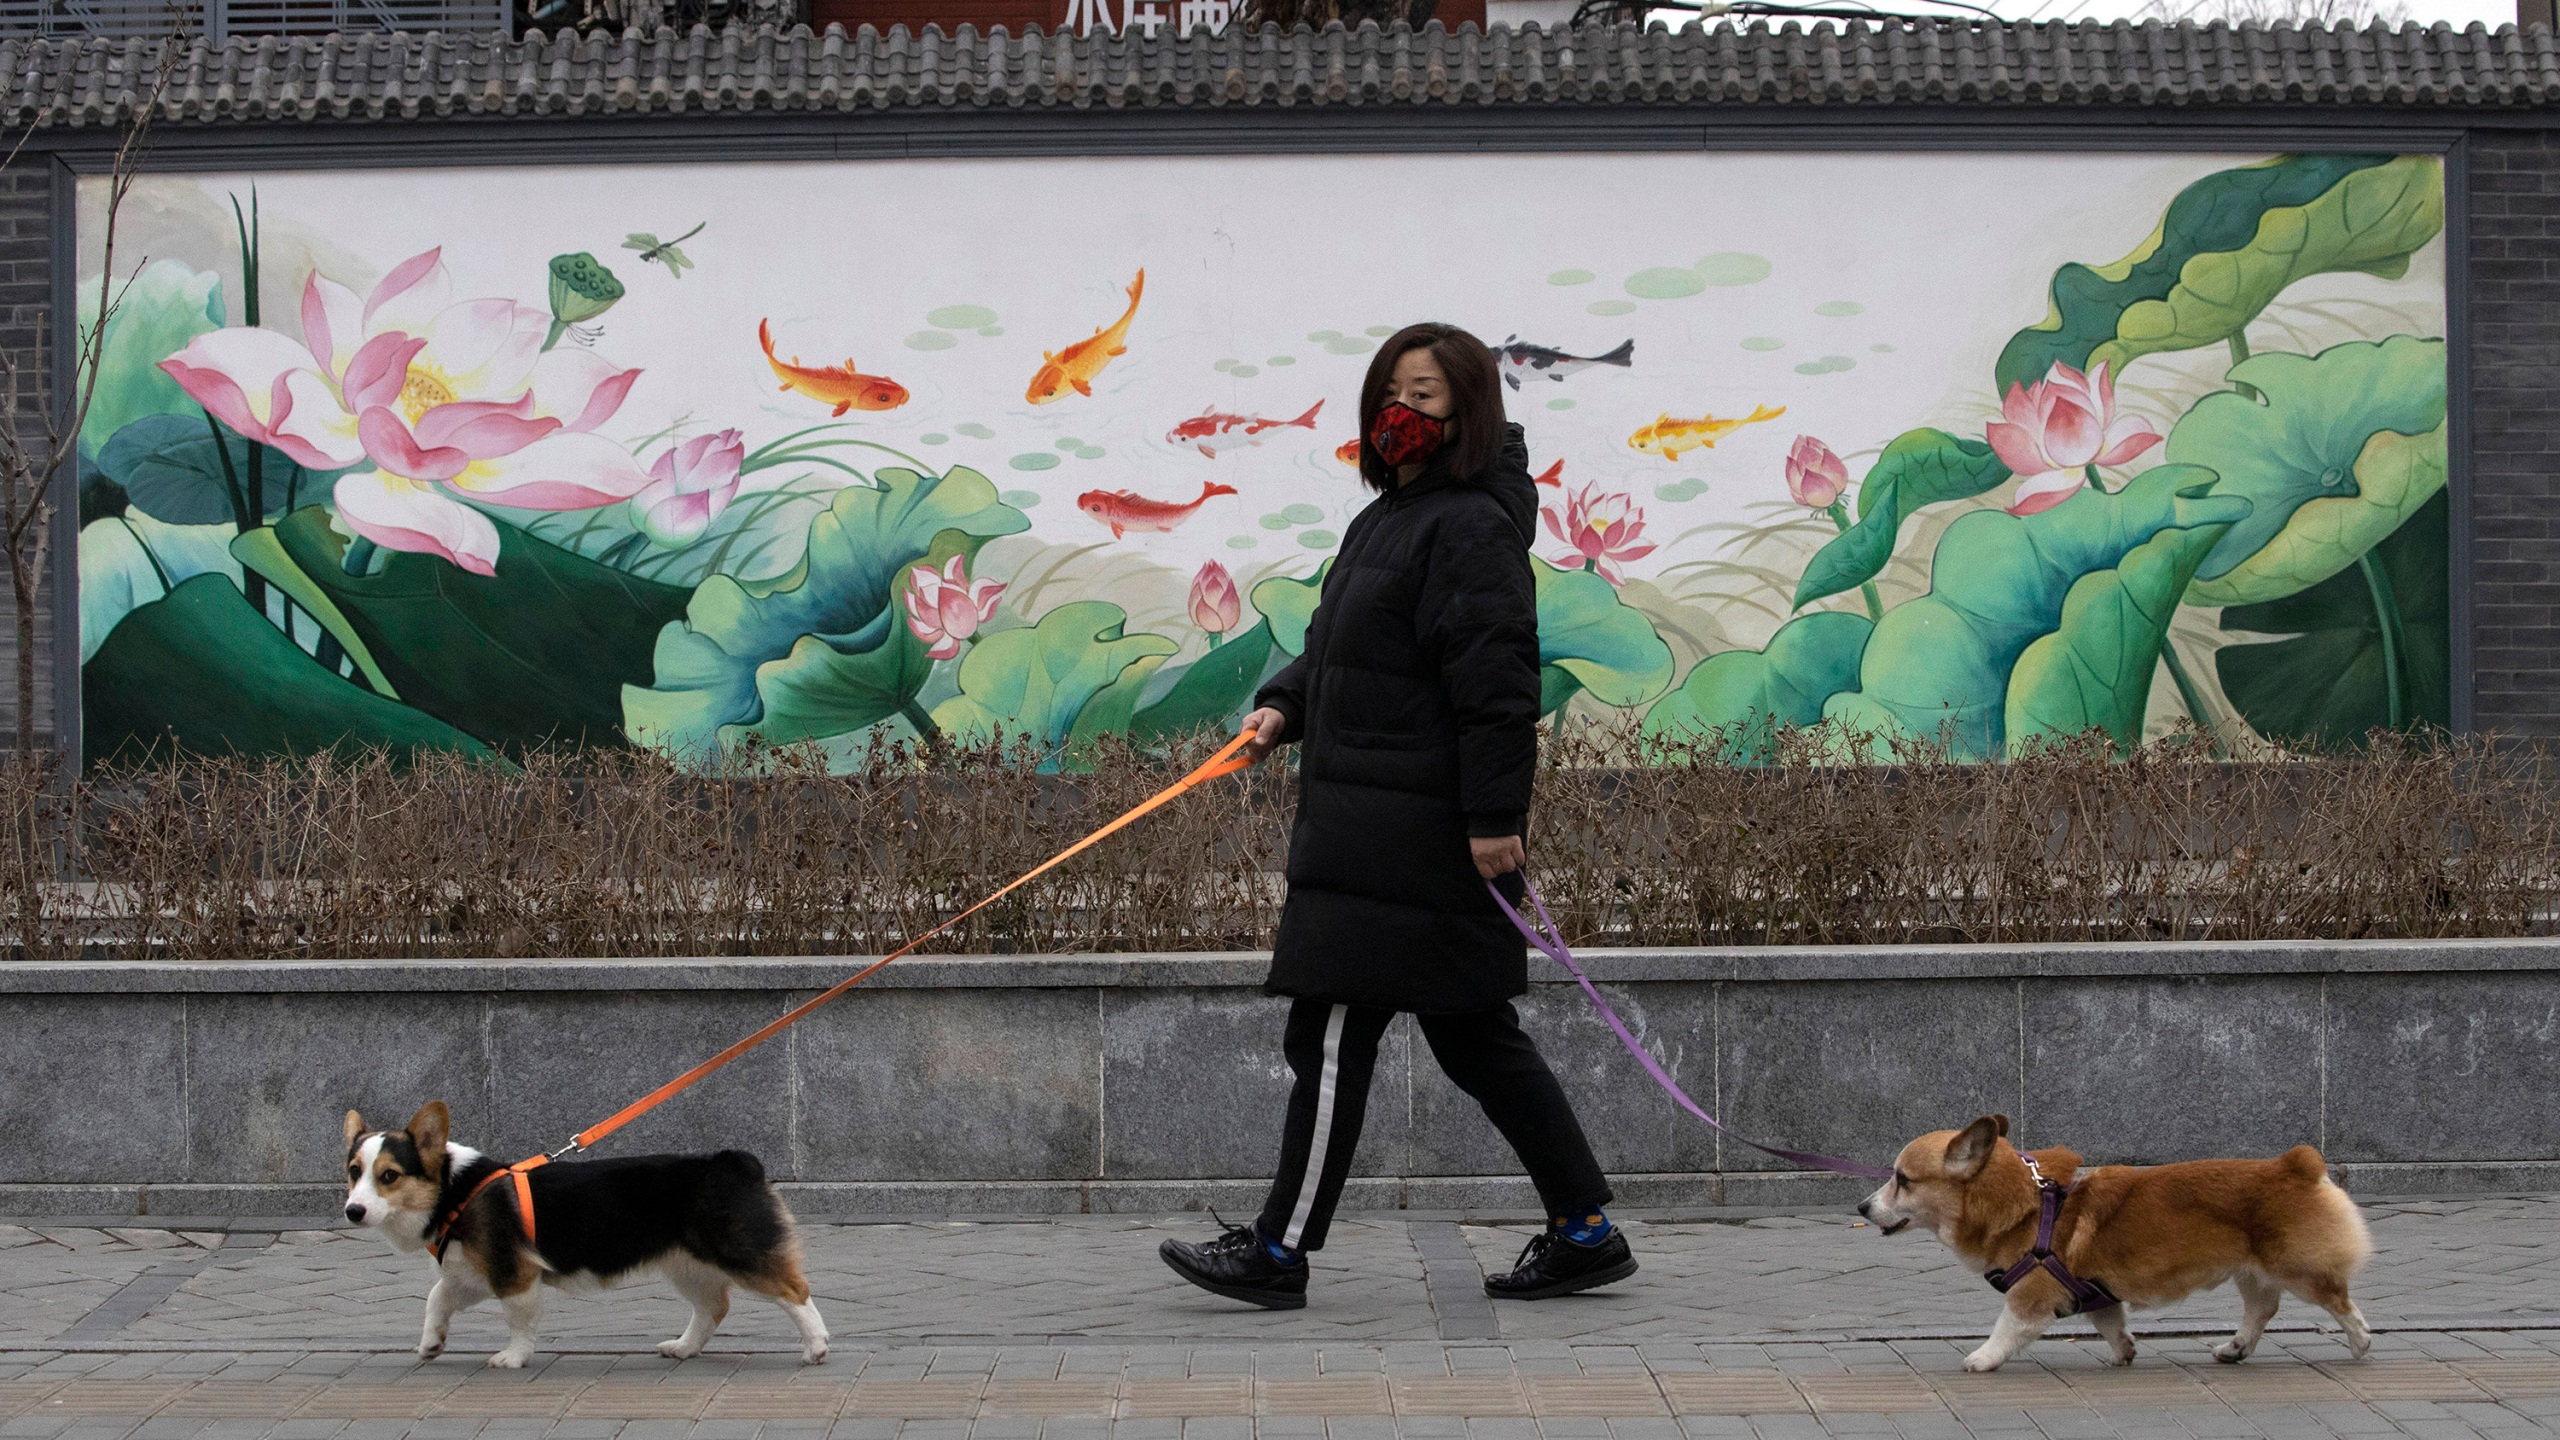 A resident wearing mask walks her dogs in Beijing. Pet cats and dogs cannot pass the new coronavirus on to humans, but they can test positive for low levels of the pathogen if they catch it from their owners. That's the conclusion of Hong Kong's Agriculture, Fisheries and Conservation Department after a dog in quarantine tested weak positive for the virus. (AP Photo/Ng Han Guan, File)